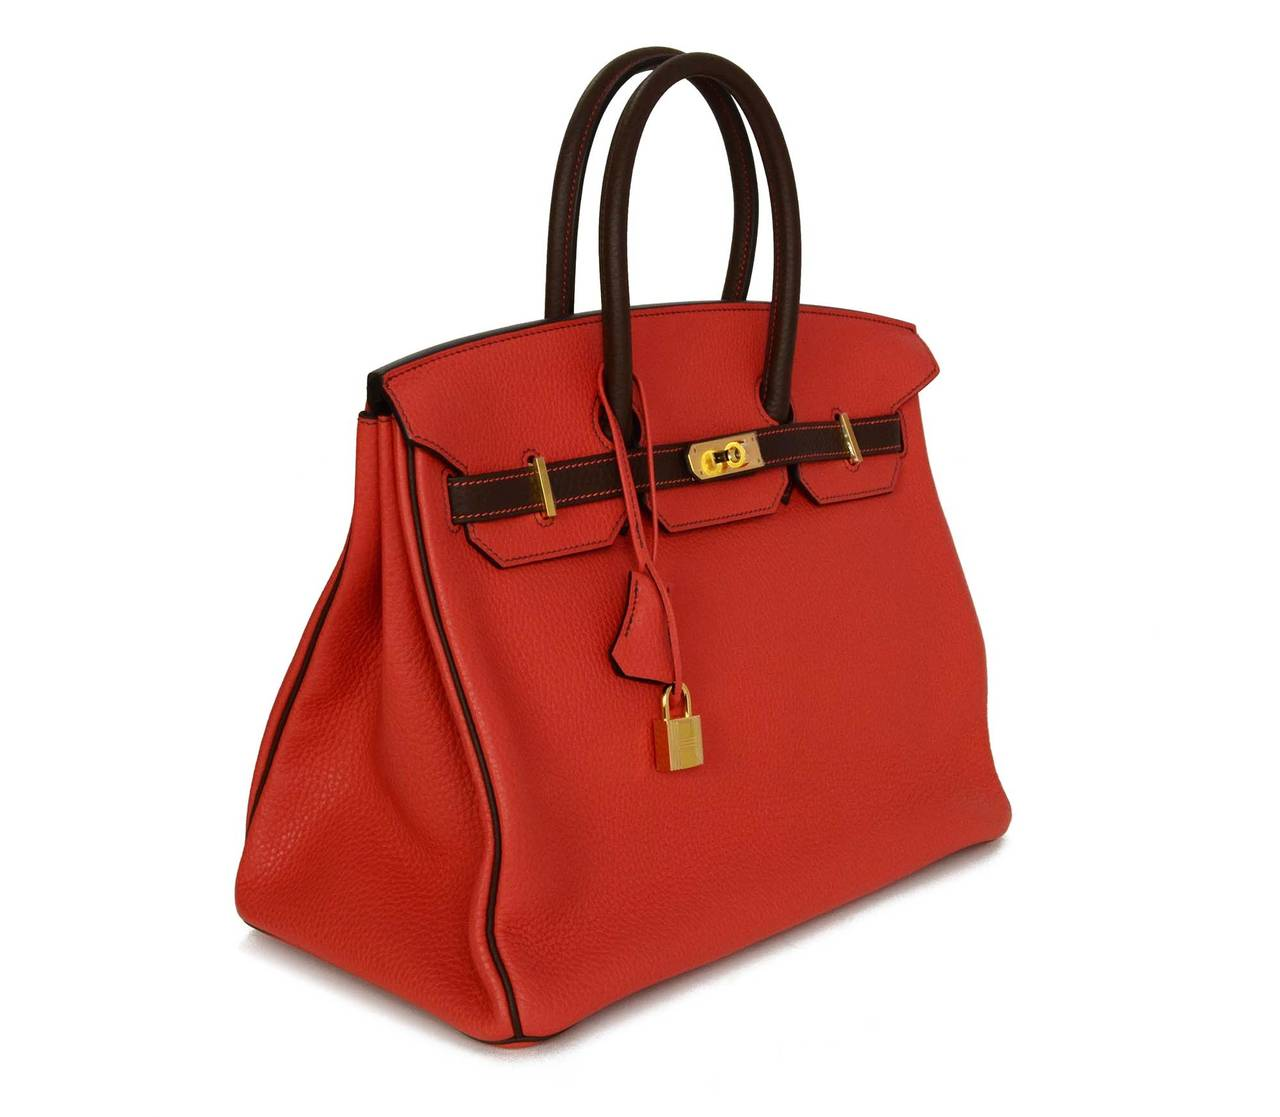 HERMES '15 SO Rouge Pivione/Cacao Red & Brown Togo Leather 35 cm Birkin Bag GHW 2